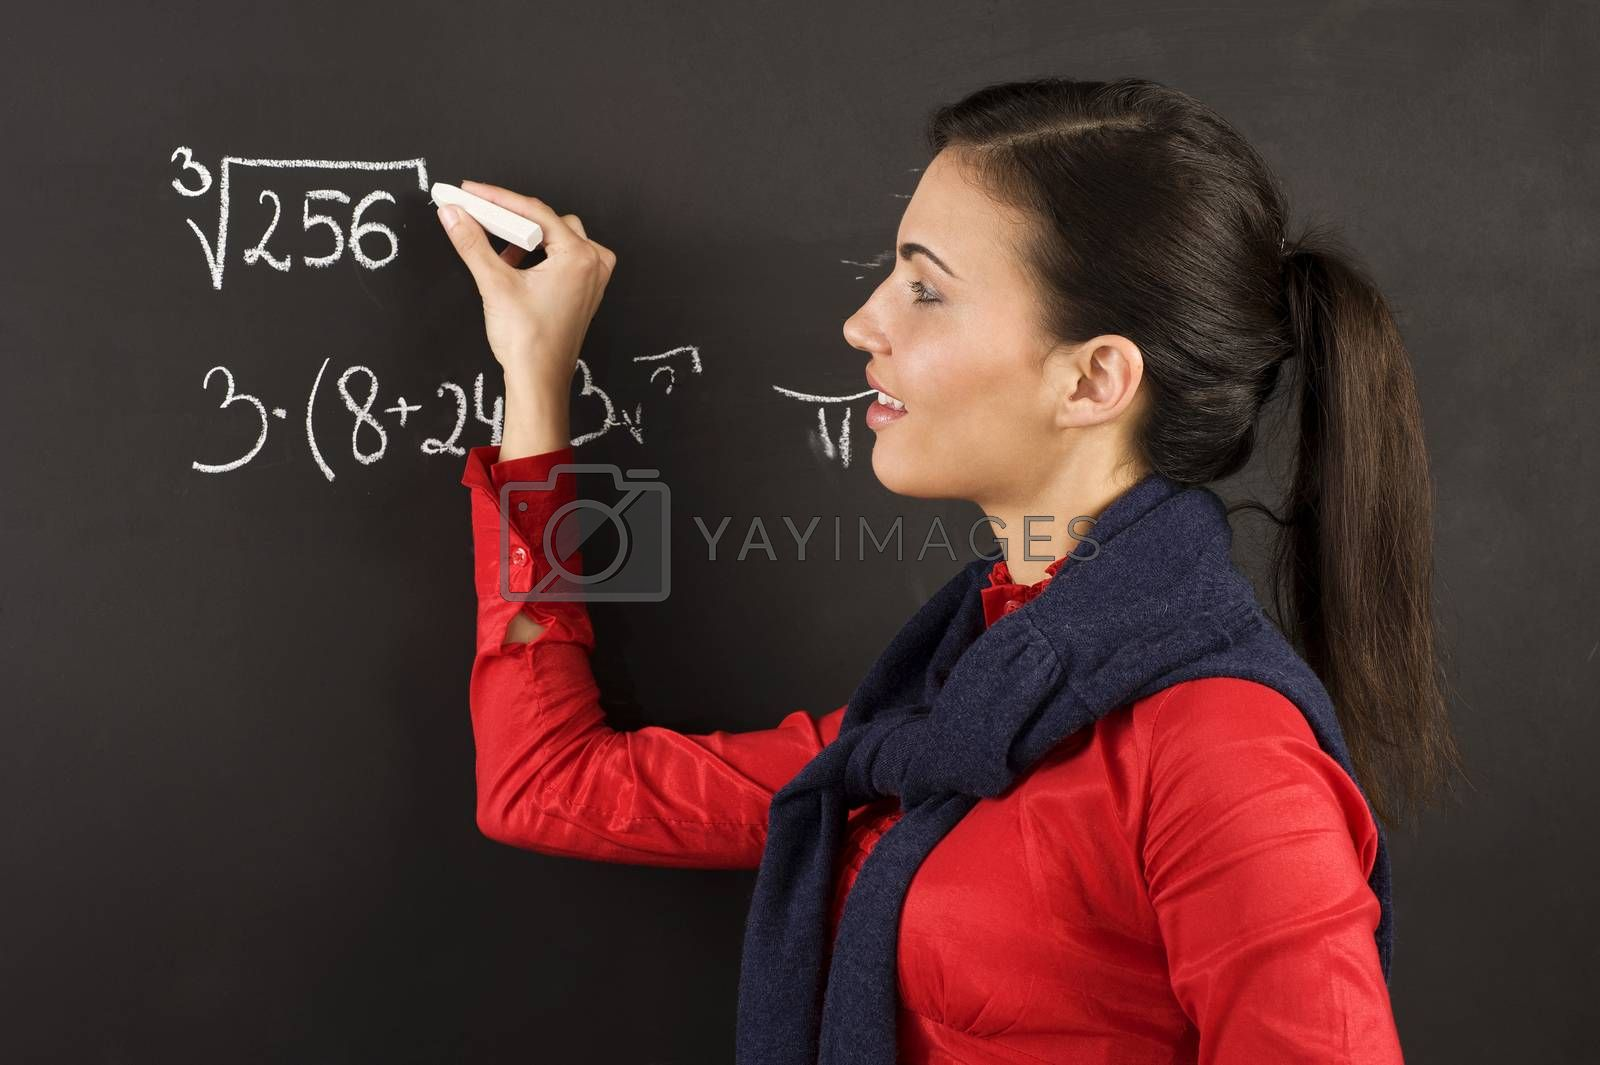 Royalty free image of girl at blackboard by fotoCD